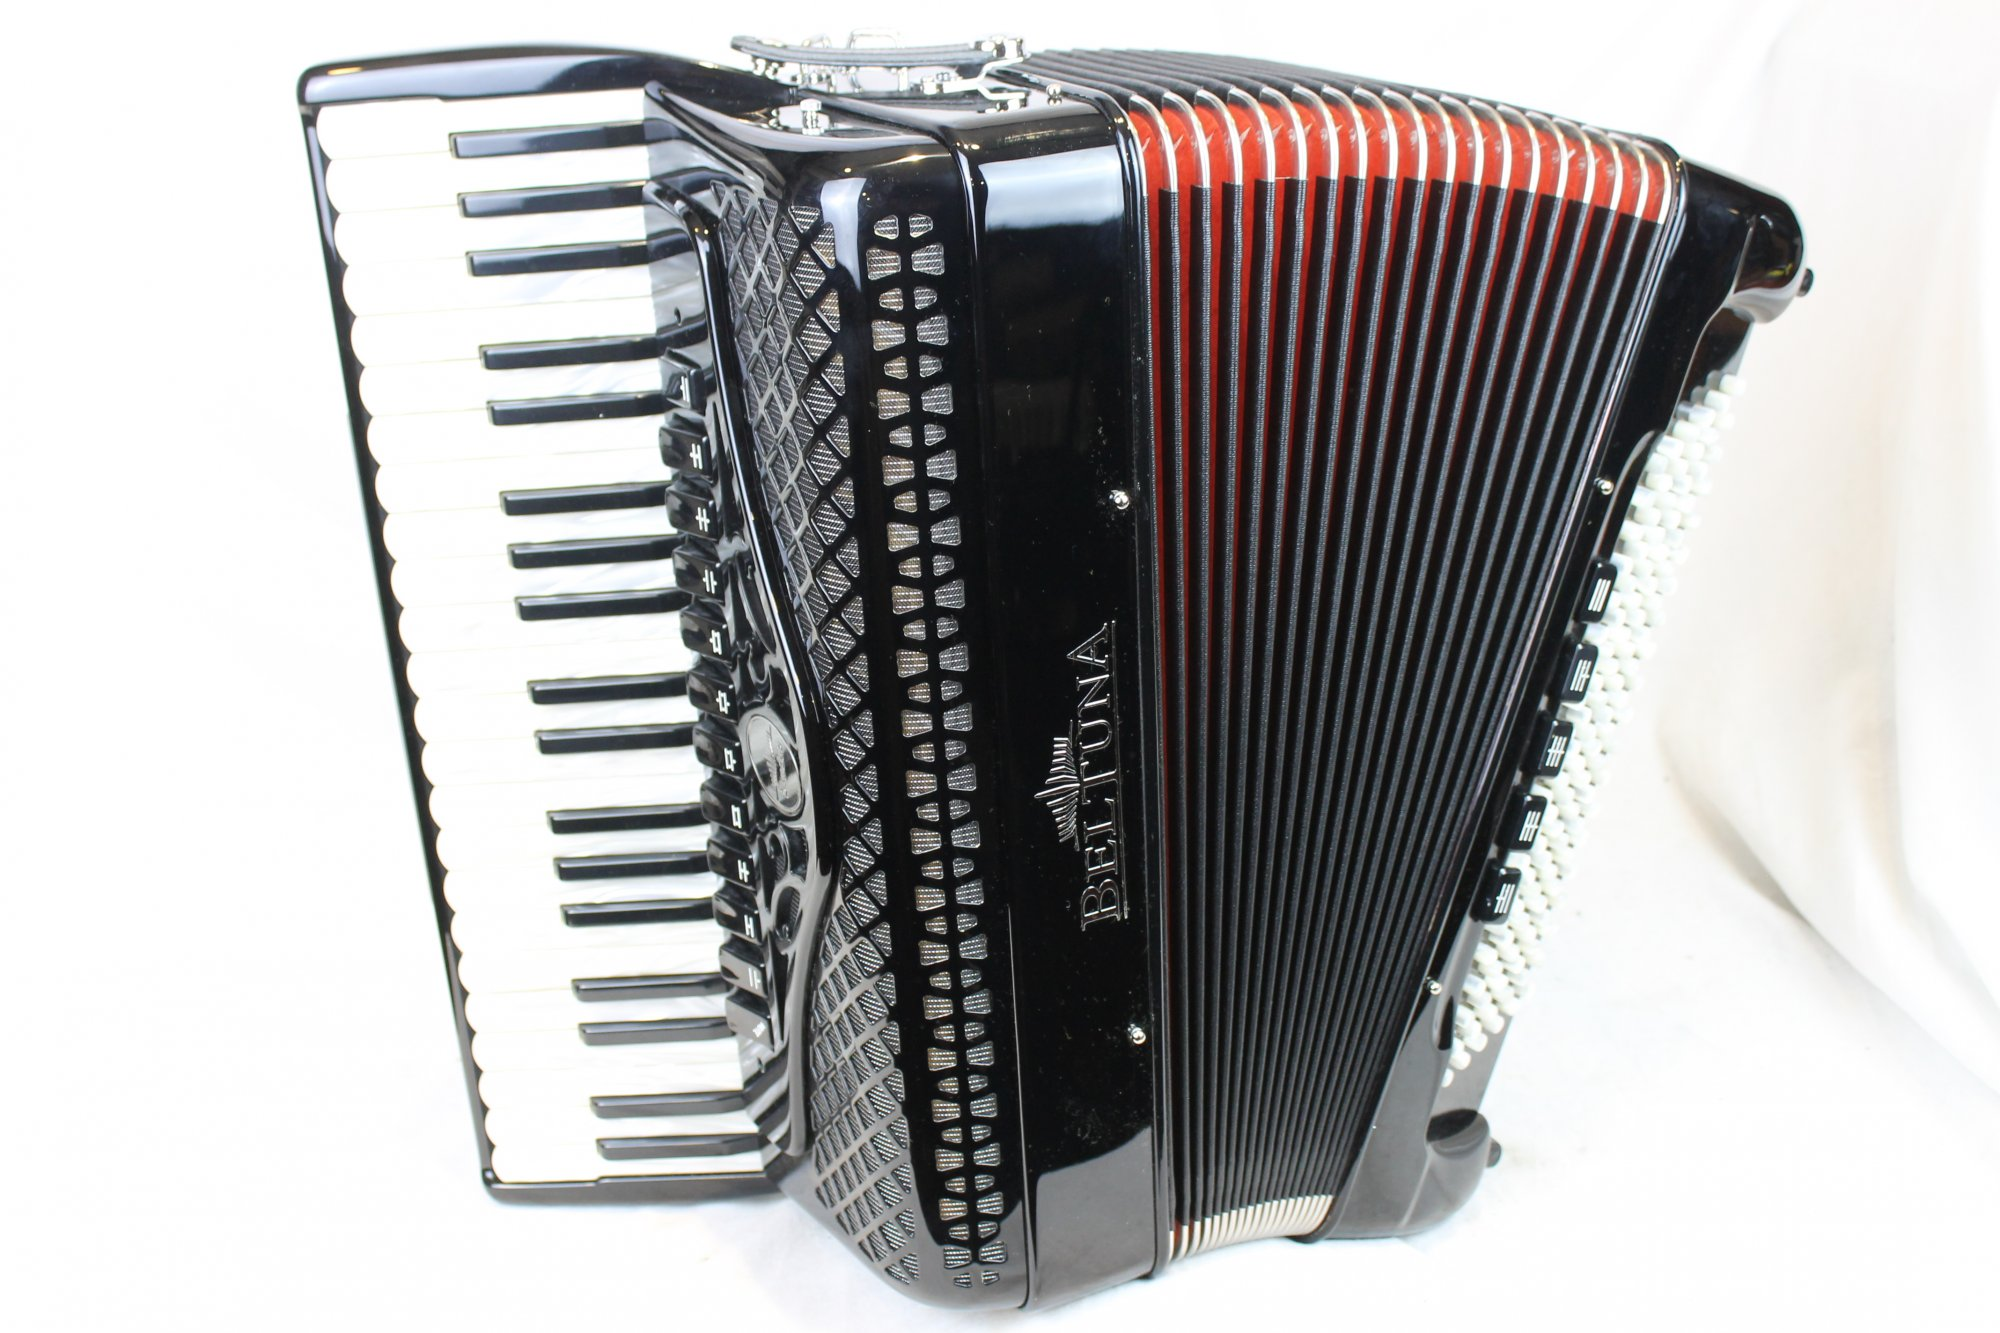 NEW Black Beltuna Studio IV Piano Accordion LMMH 41 120